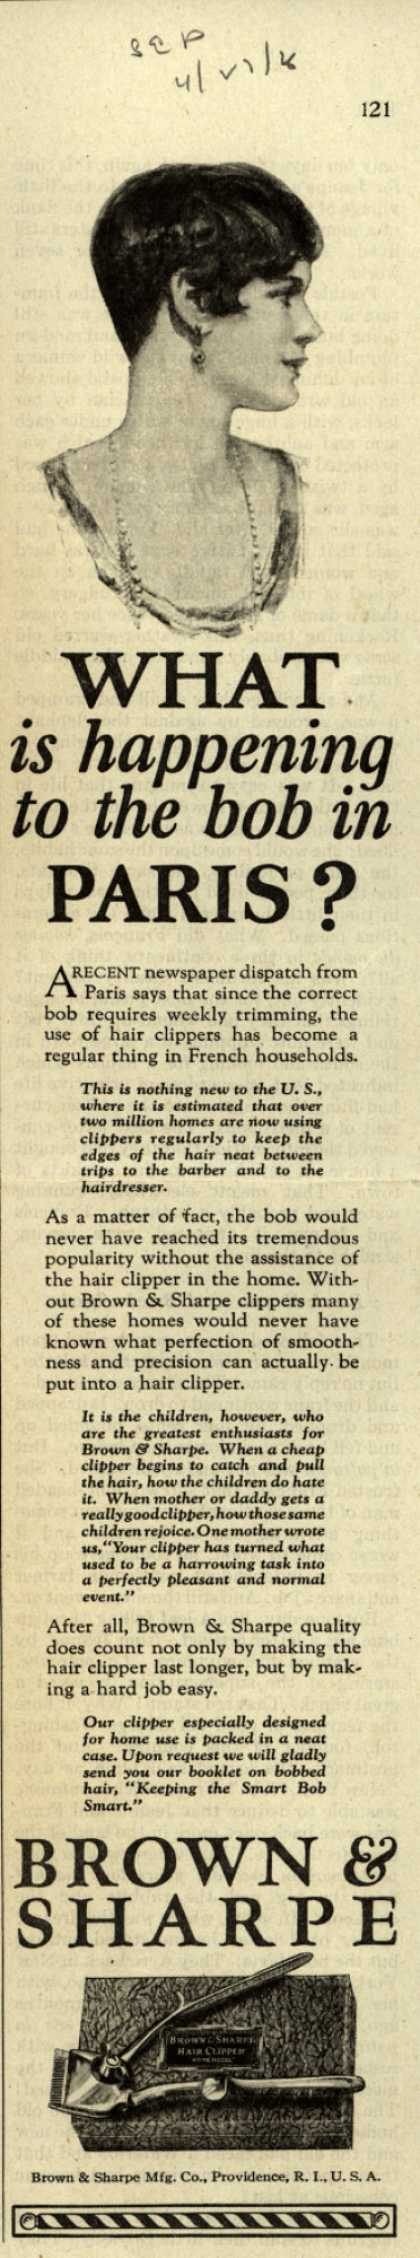 Brown & Sharpe Manufacturing Company's Hair Clippers – What is happening to the bob in Paris? (1926)